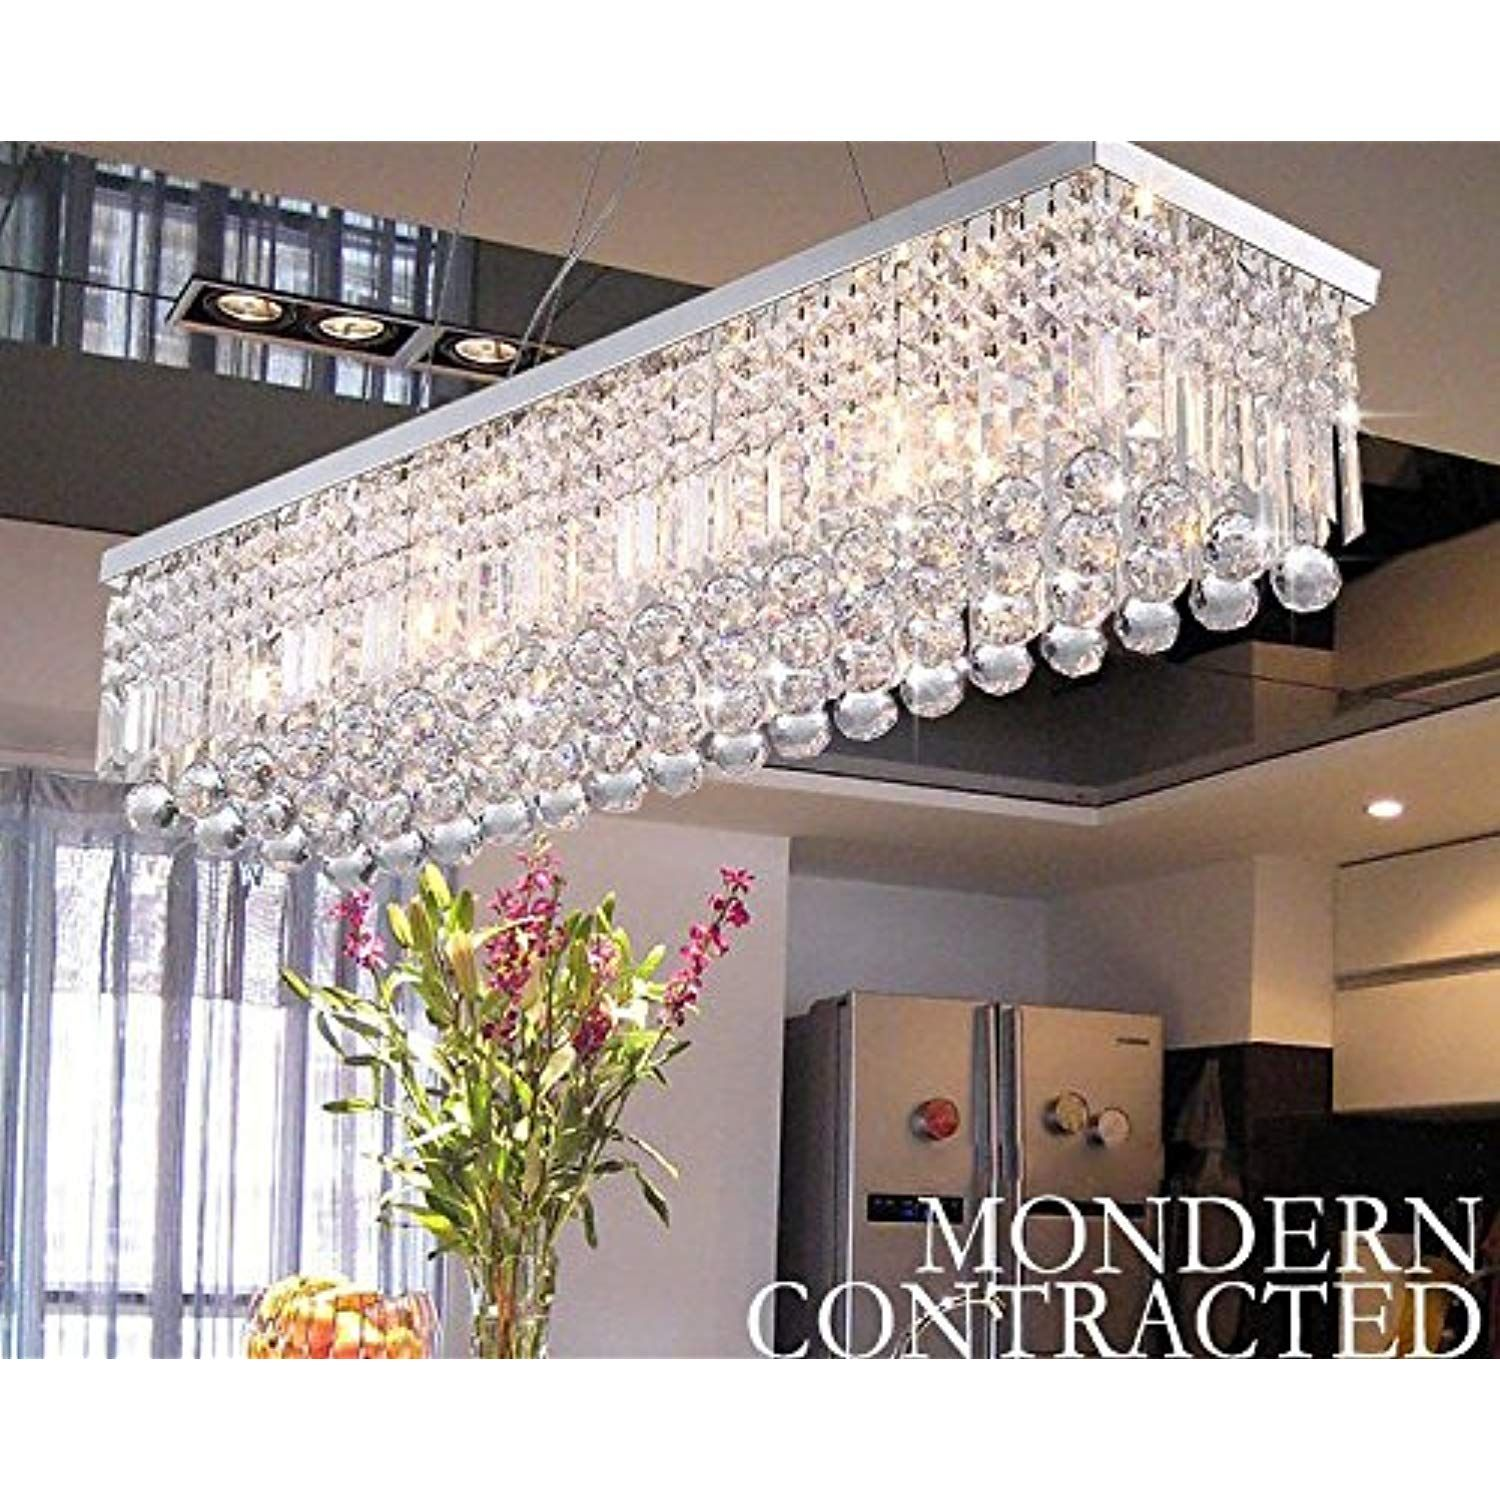 Crystop rectangle crystal chandeliers dining room modern ceiling light fixtures polished chrome finish l31 5 x w9 8 x h8 9 click image to review